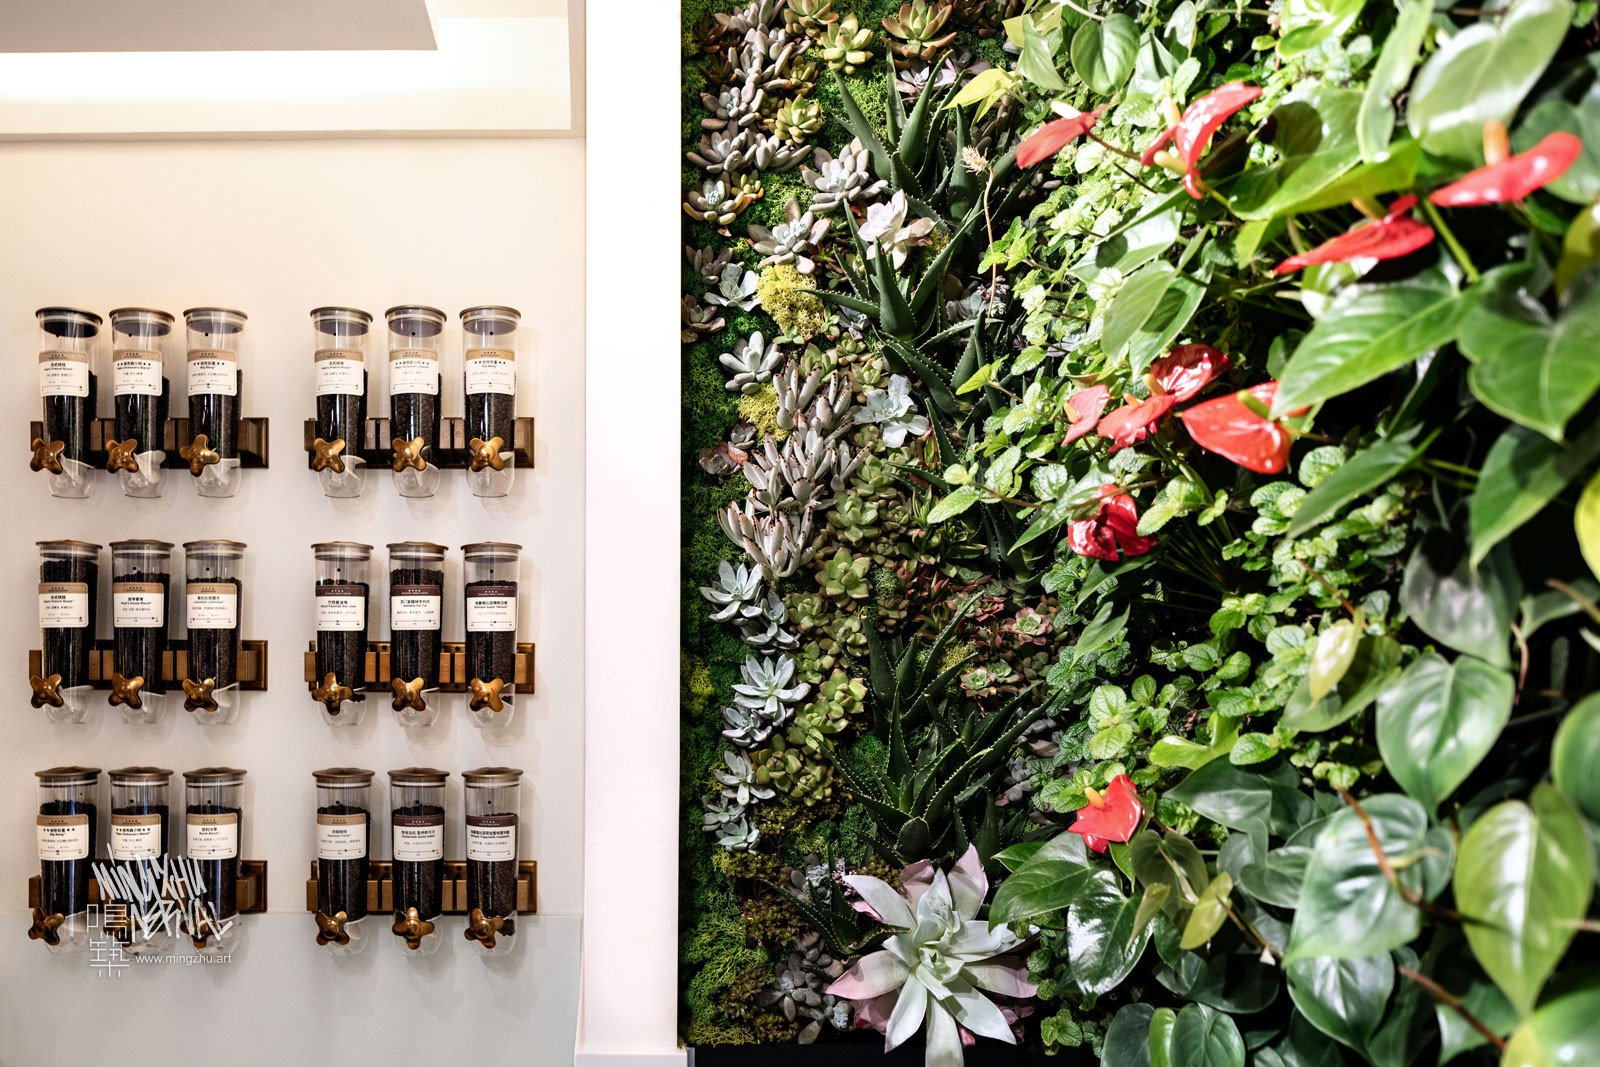 Mingzhu Nerval vertical living wall experts created the best garden design art at Peet's Coffee in Shanghai, 2018